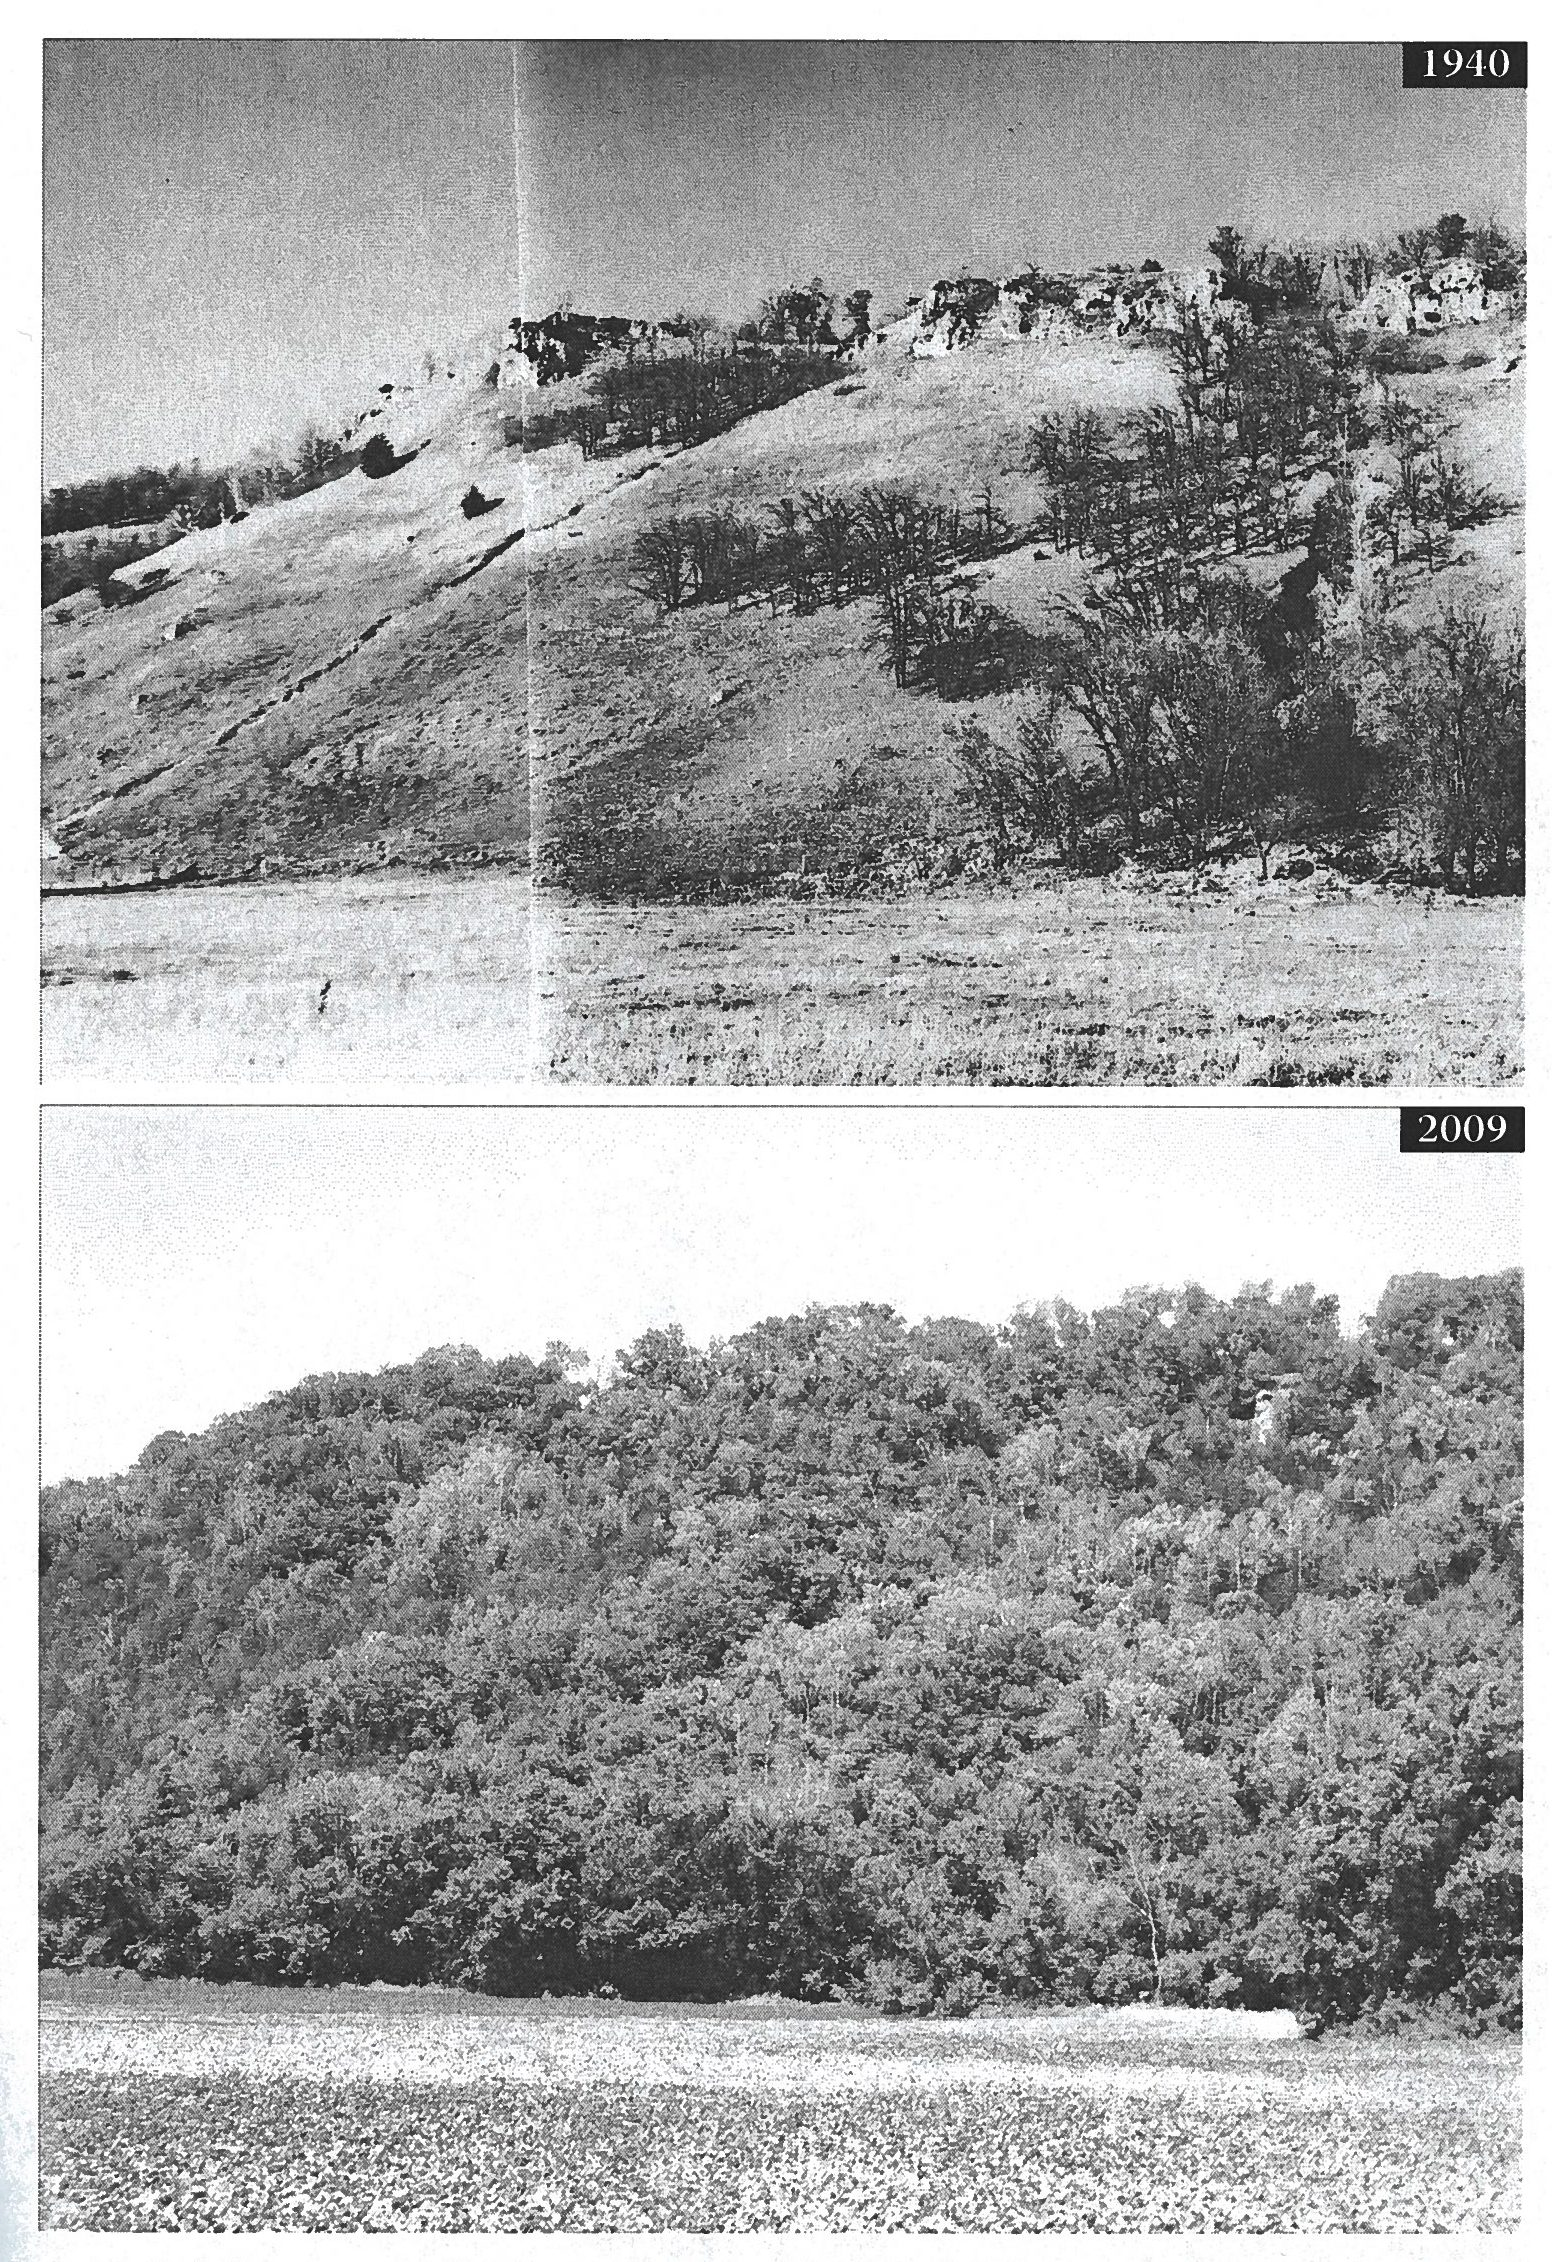 In 1940 (top) much of the native vegetation was cleared, destabilizing the soil and leading to the formation of large gullies. By 2009 (bottom) bluffs were allowed to convert back to native vegetation, stabilizing the gullies and soils. Image courtesy of Stanley W. Trimble.